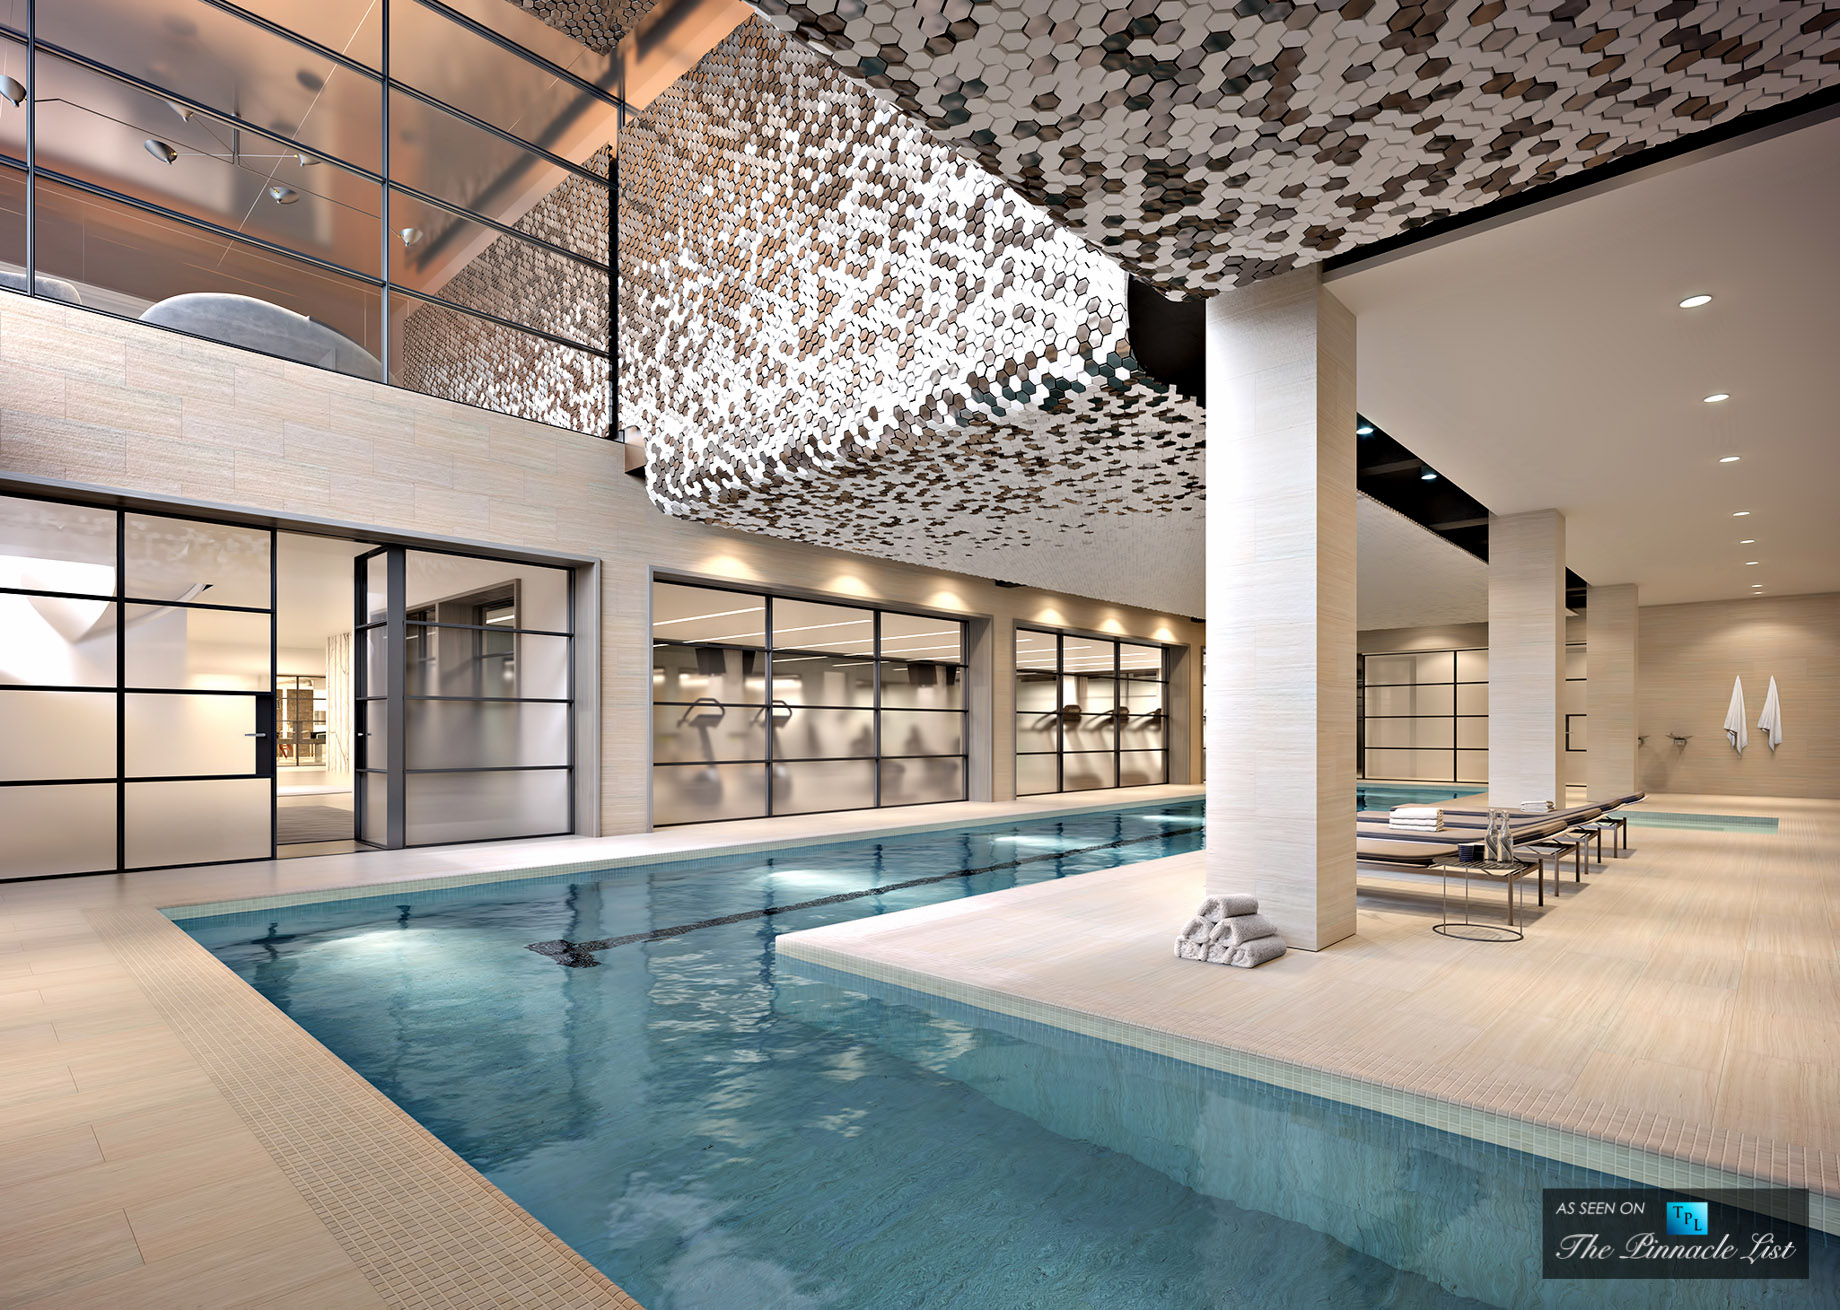 88 and 90 Lexington Avenue - New York Citys Hottest New Development Fitness Rooms